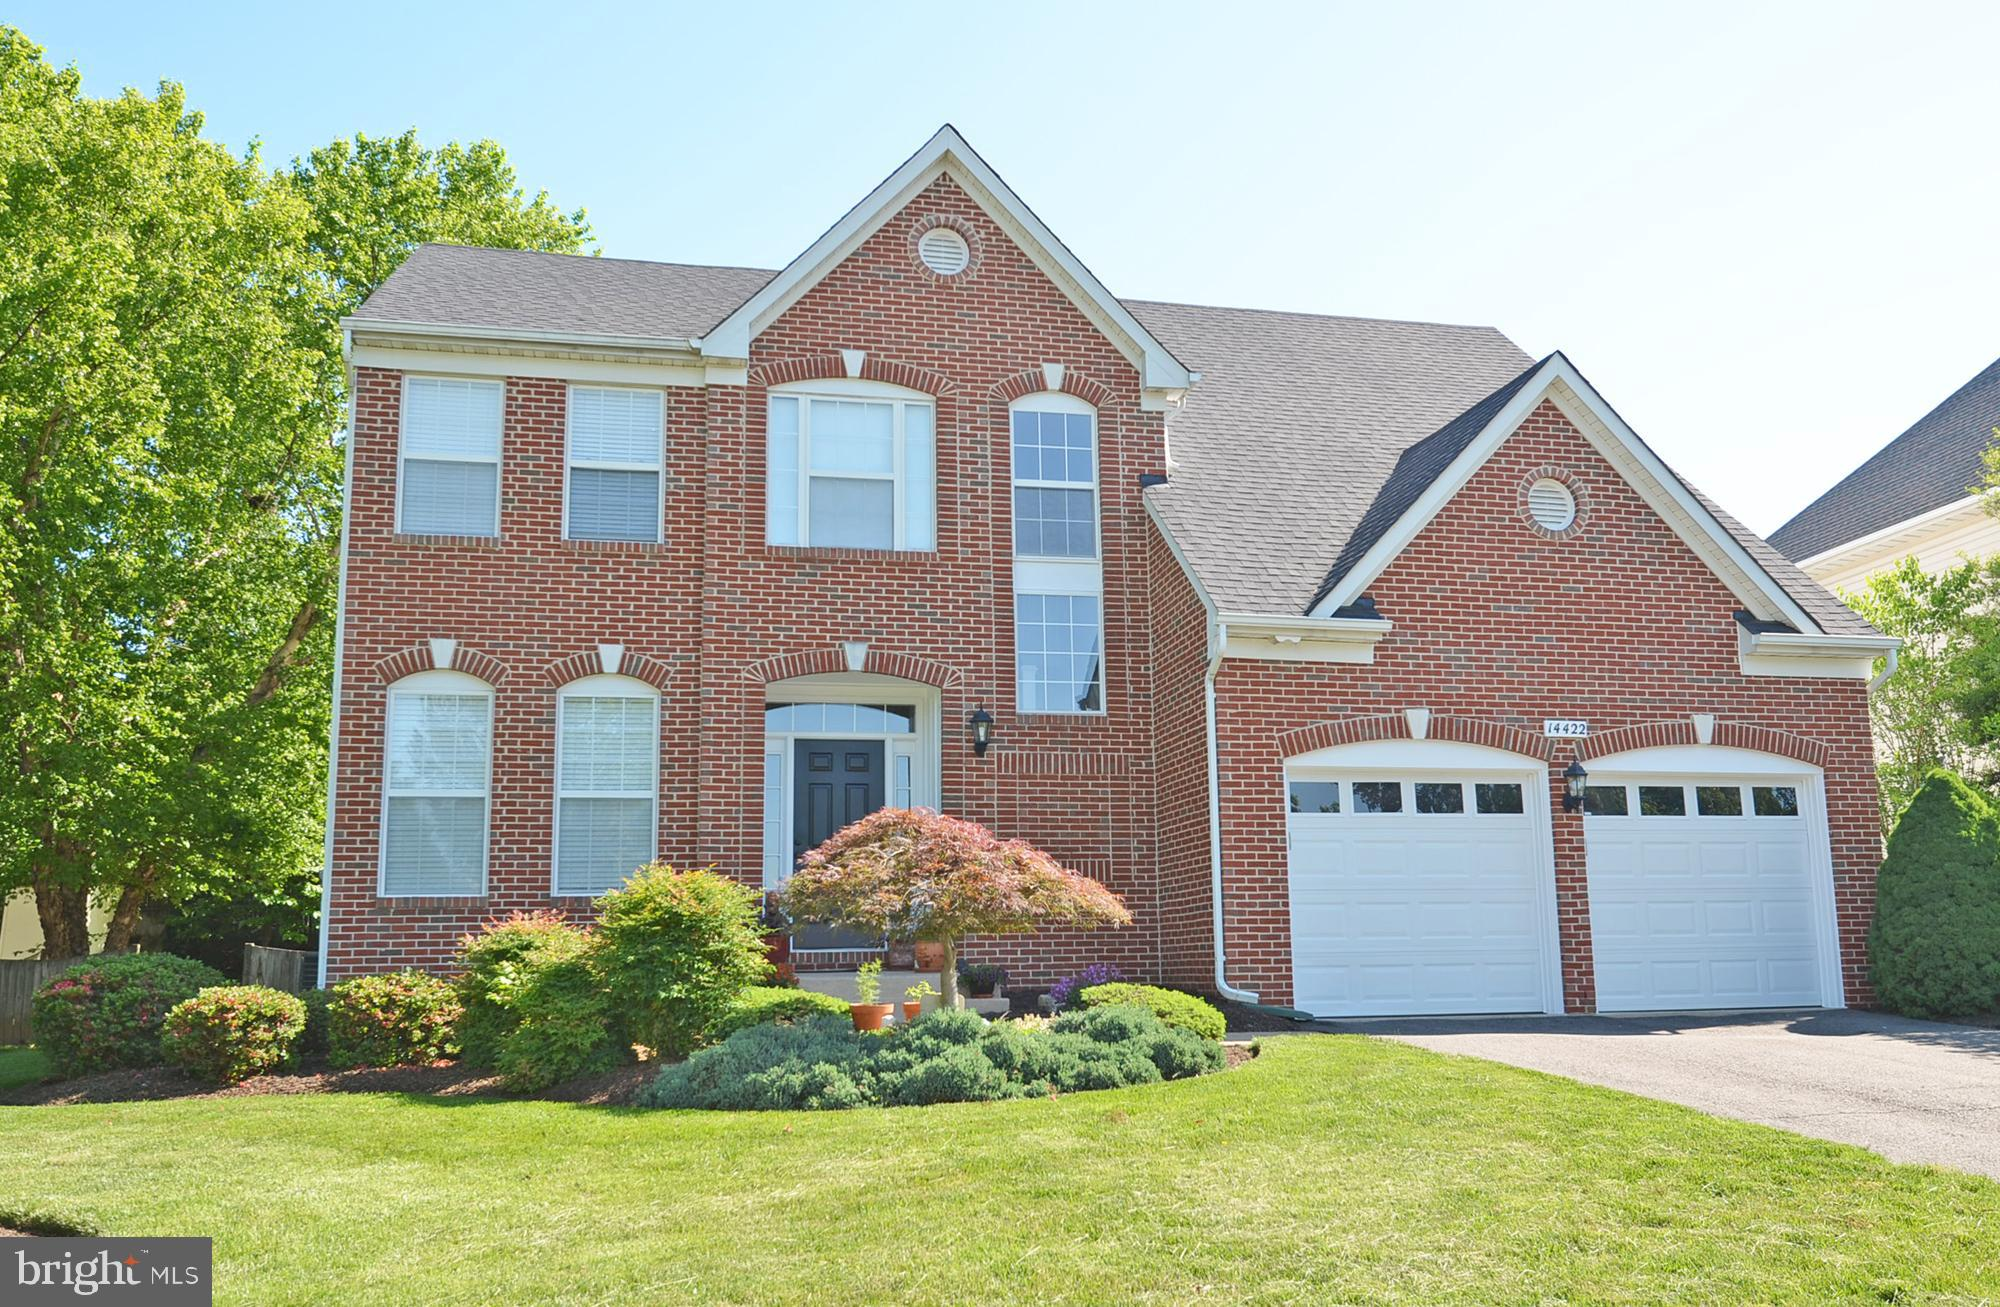 14422 PICKET OAKS ROAD, CENTREVILLE, VA 20121